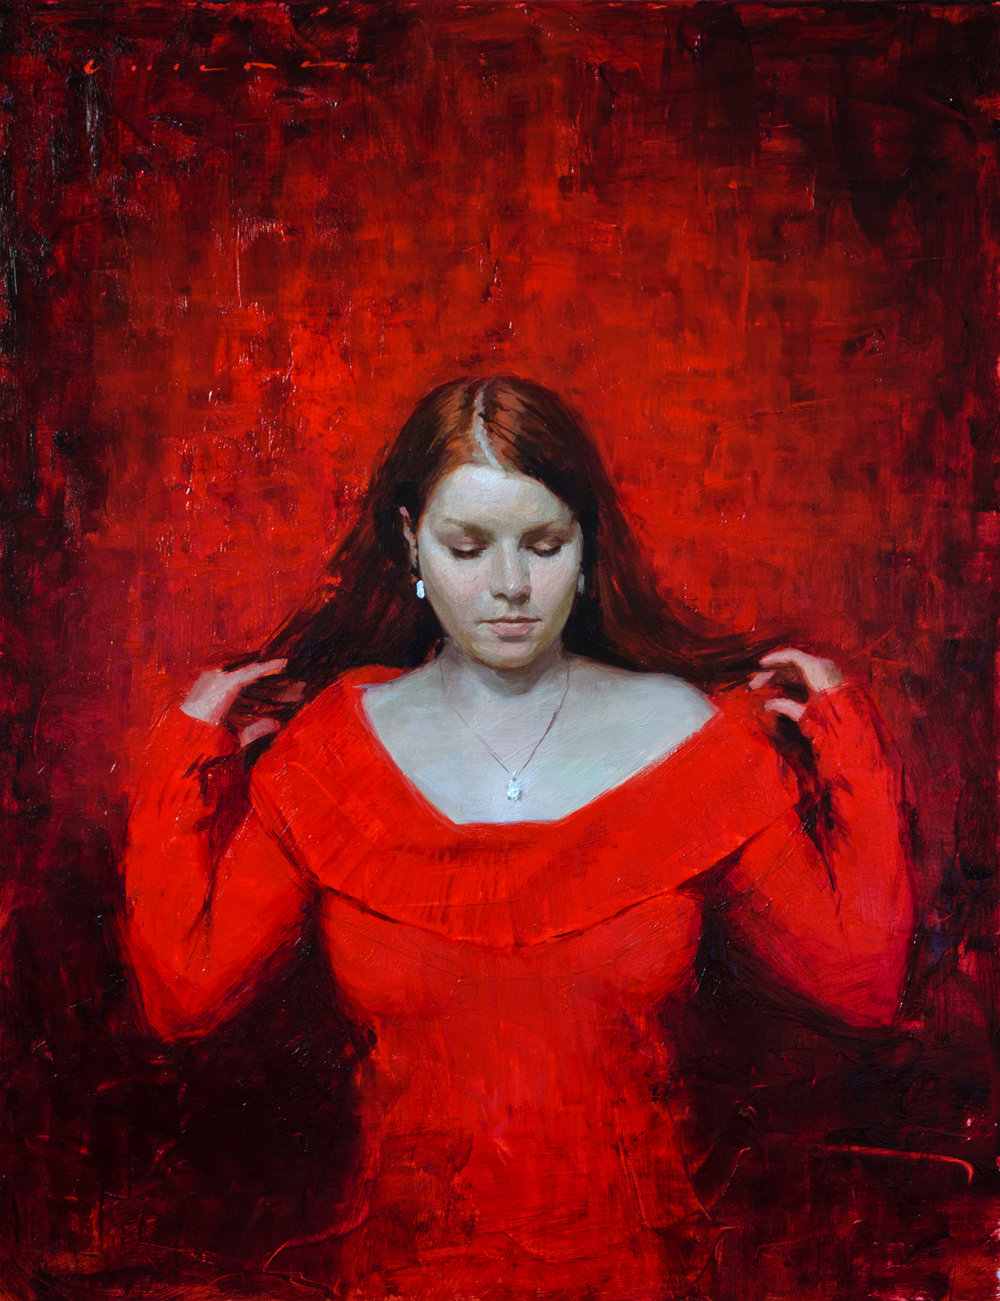 Casey Childs (b. 1974)  Sanguine  (2015) Oil on linen. 18 x 14 in.